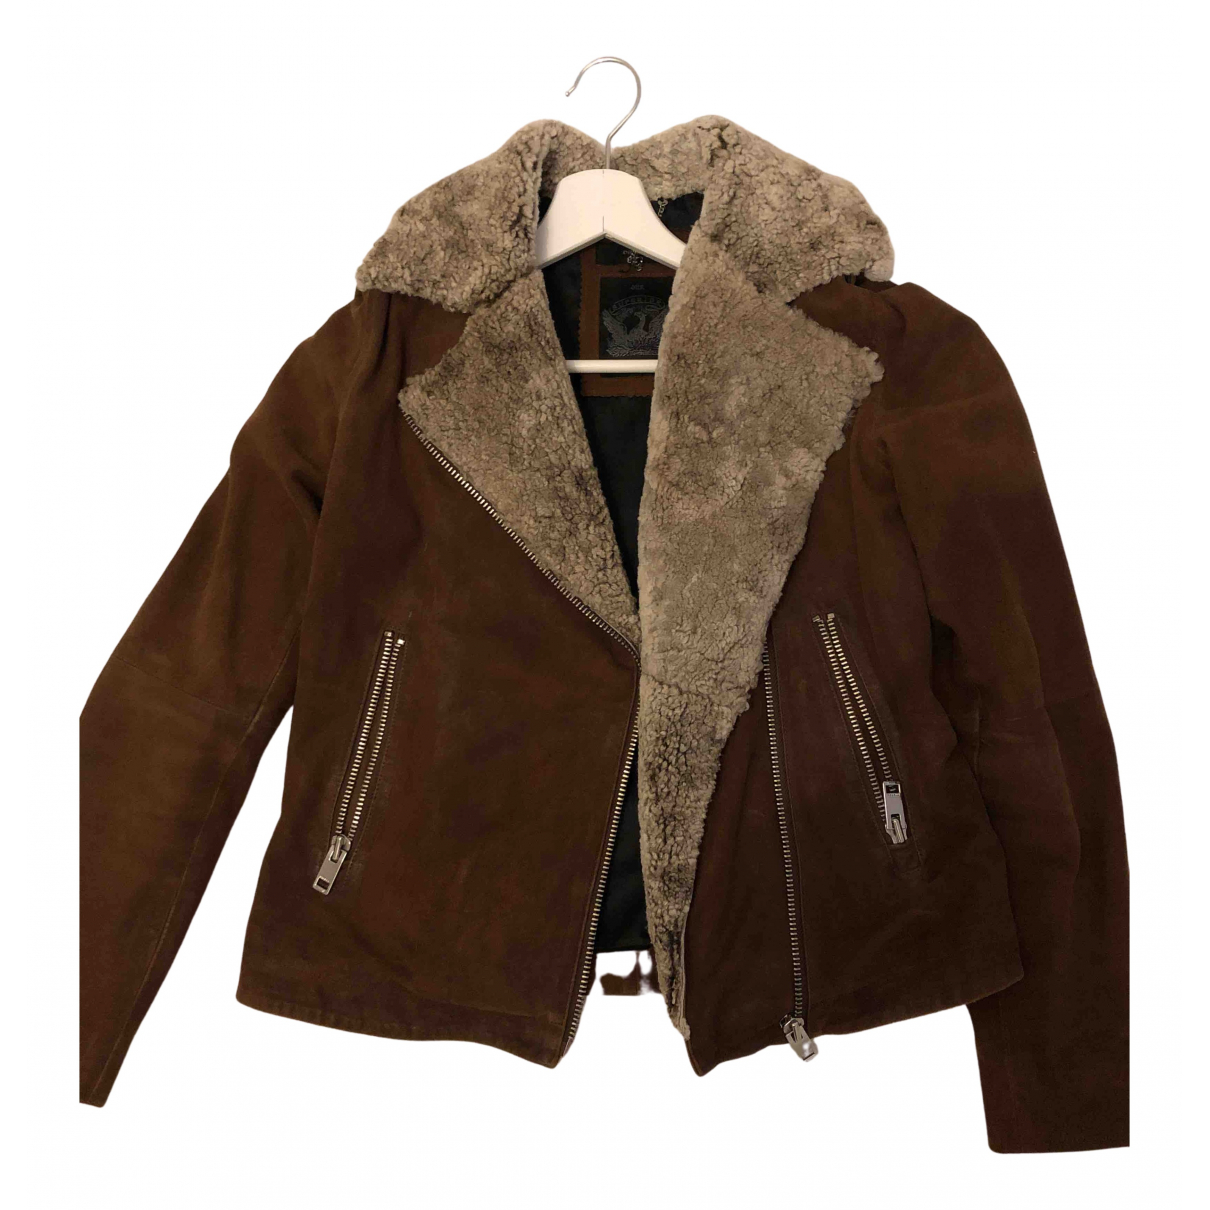 Diesel N Brown Leather jacket for Women M International